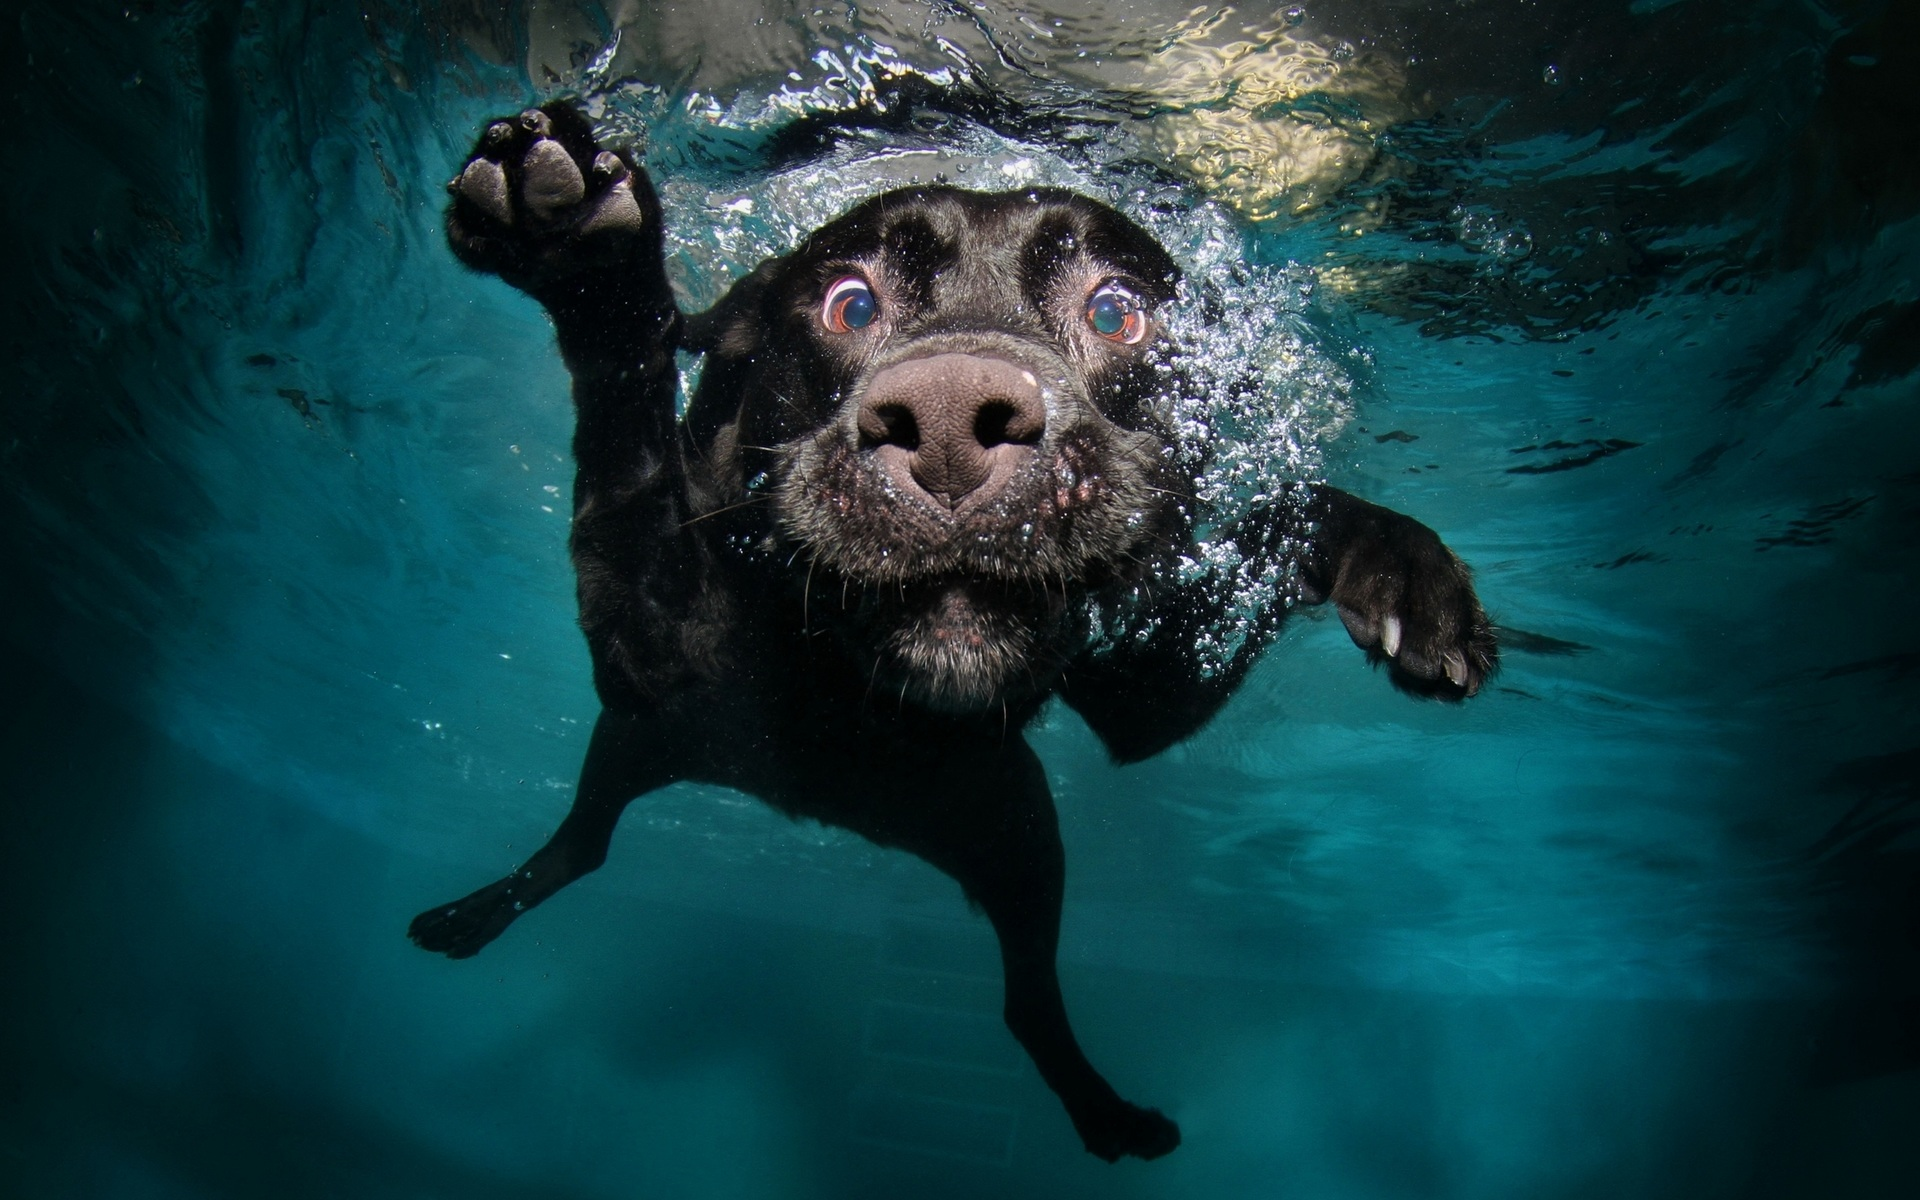 Quirky image of underwater dog that went viral